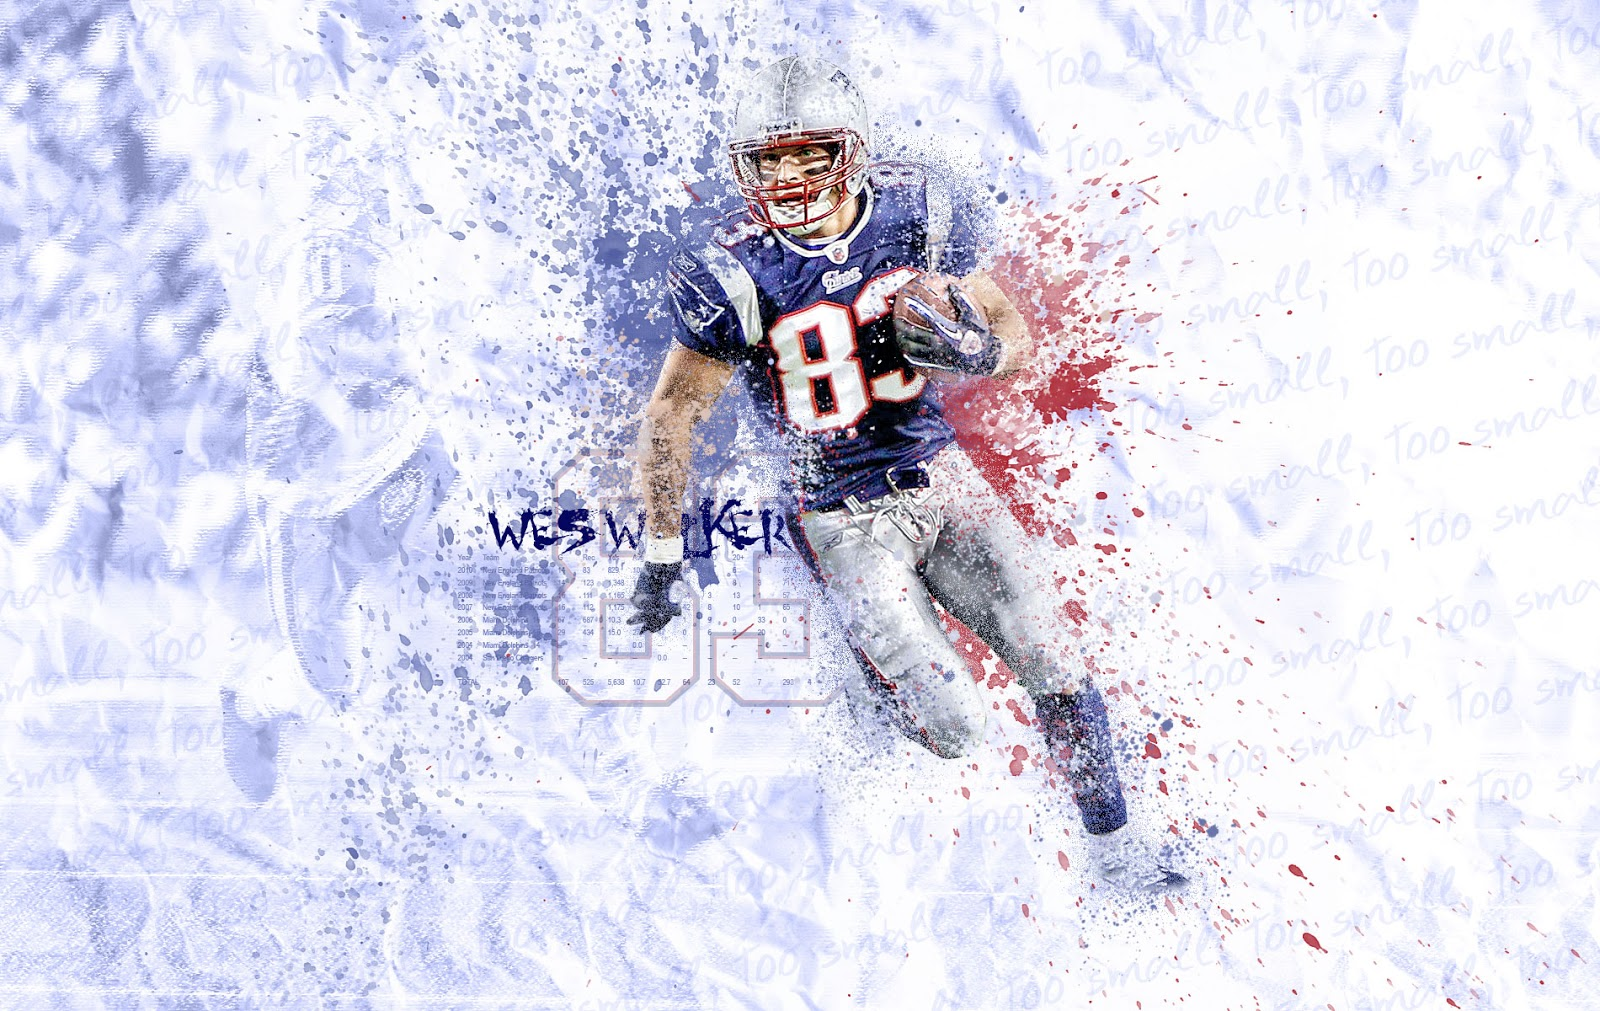 New england patriots wallpaper relay wallpaper more patriots wallpapers voltagebd Choice Image